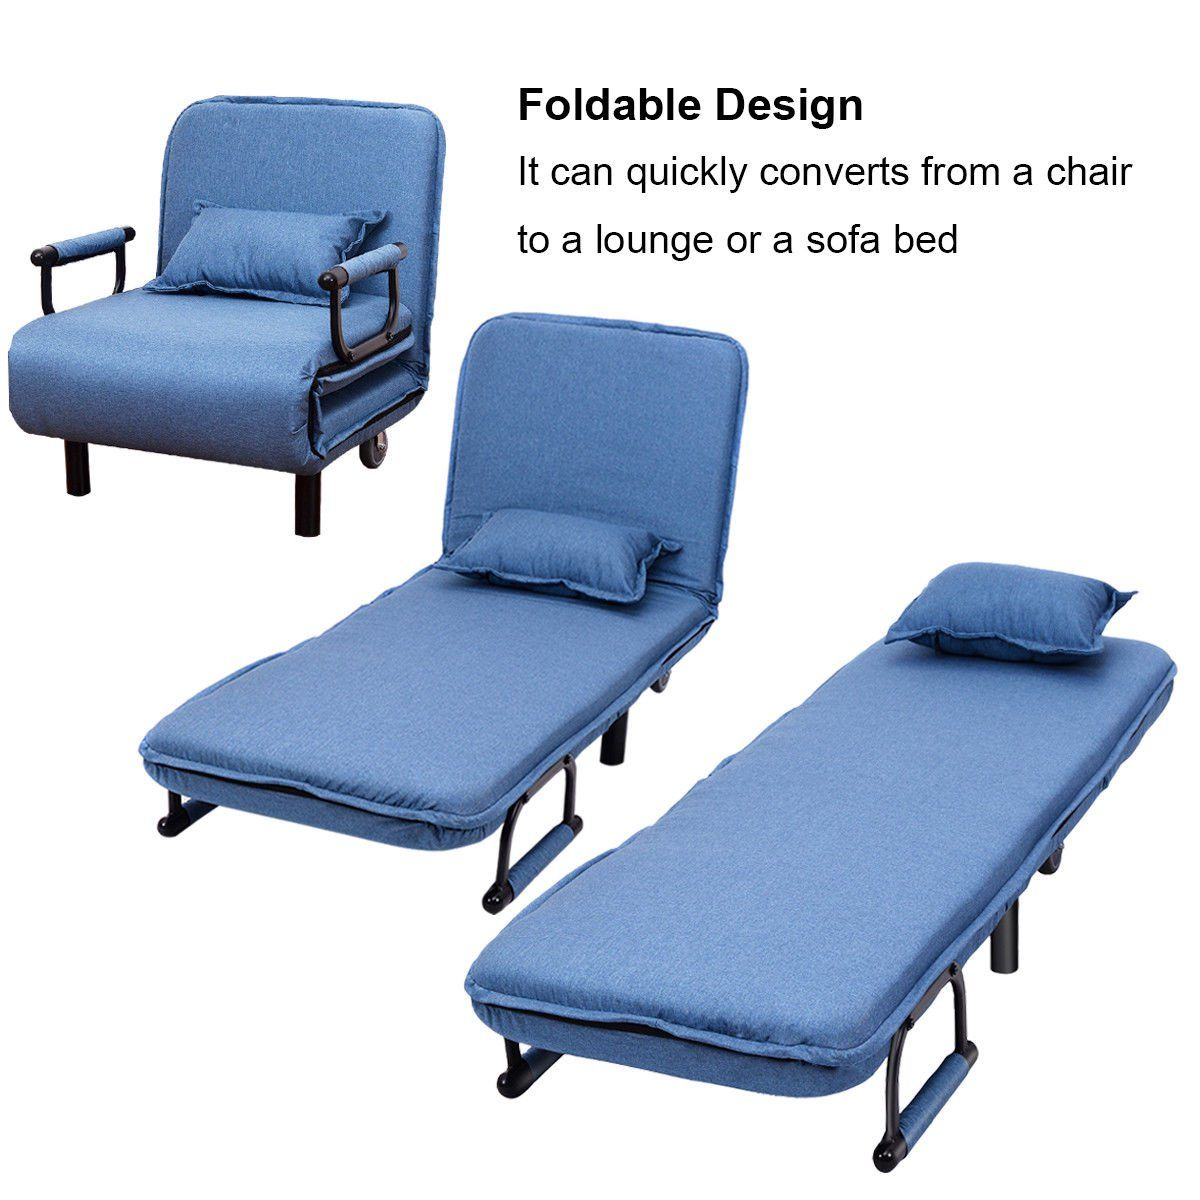 Costway Convertible Sofa Bed Folding Arm Chair Sleeper